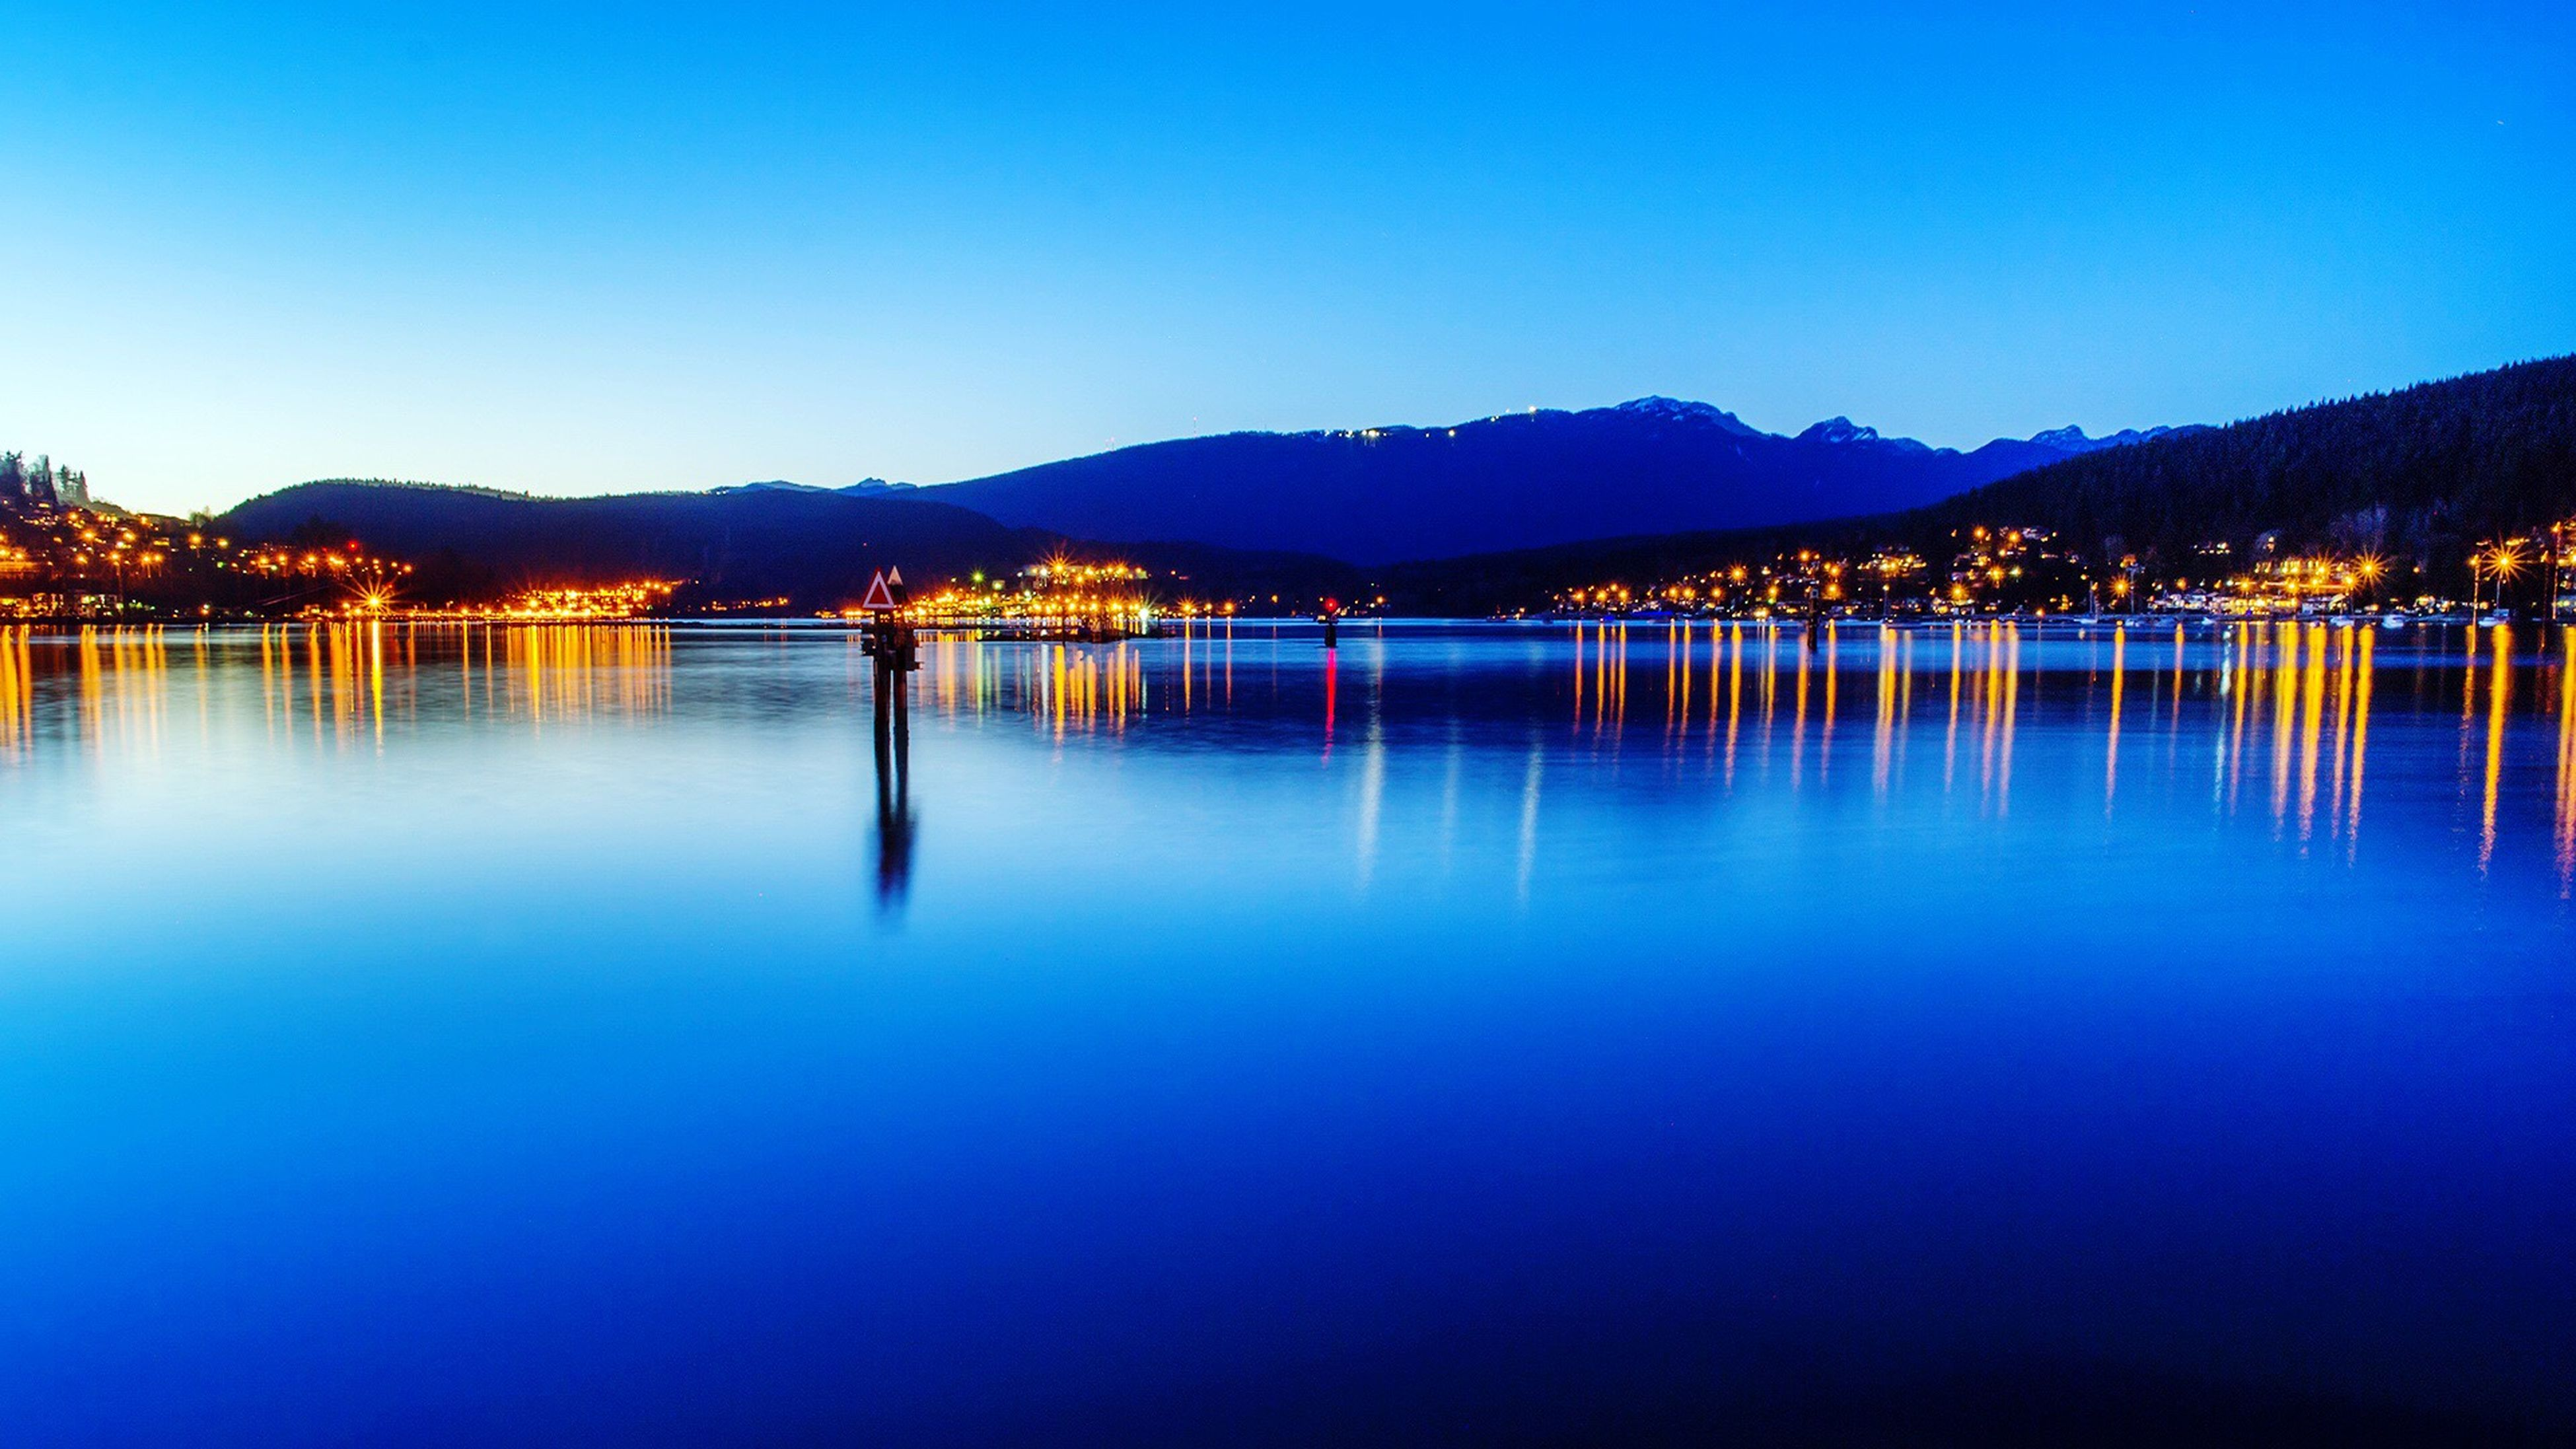 Scenic View Of Lake By Illuminated City And Mountains